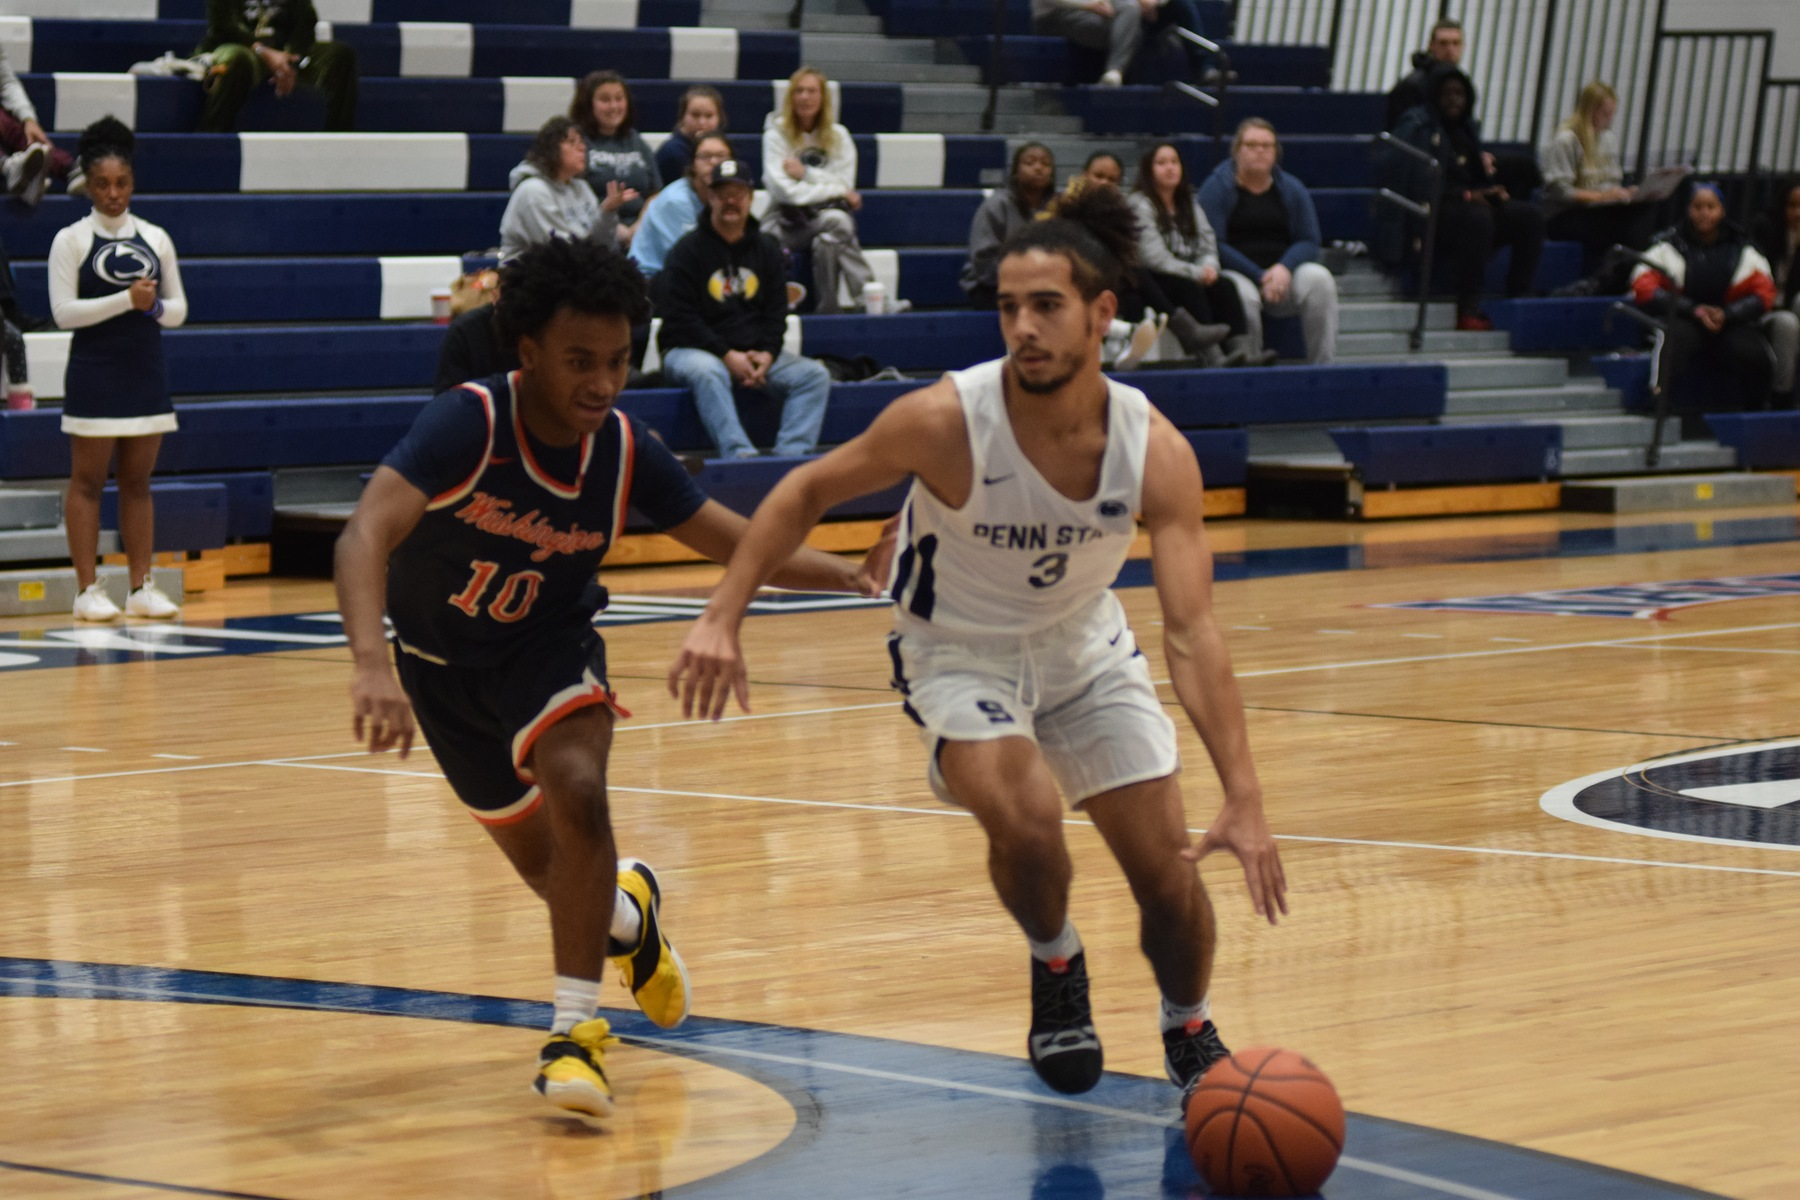 Schuylkill drops home opener to Washington Adventist, 78-55.